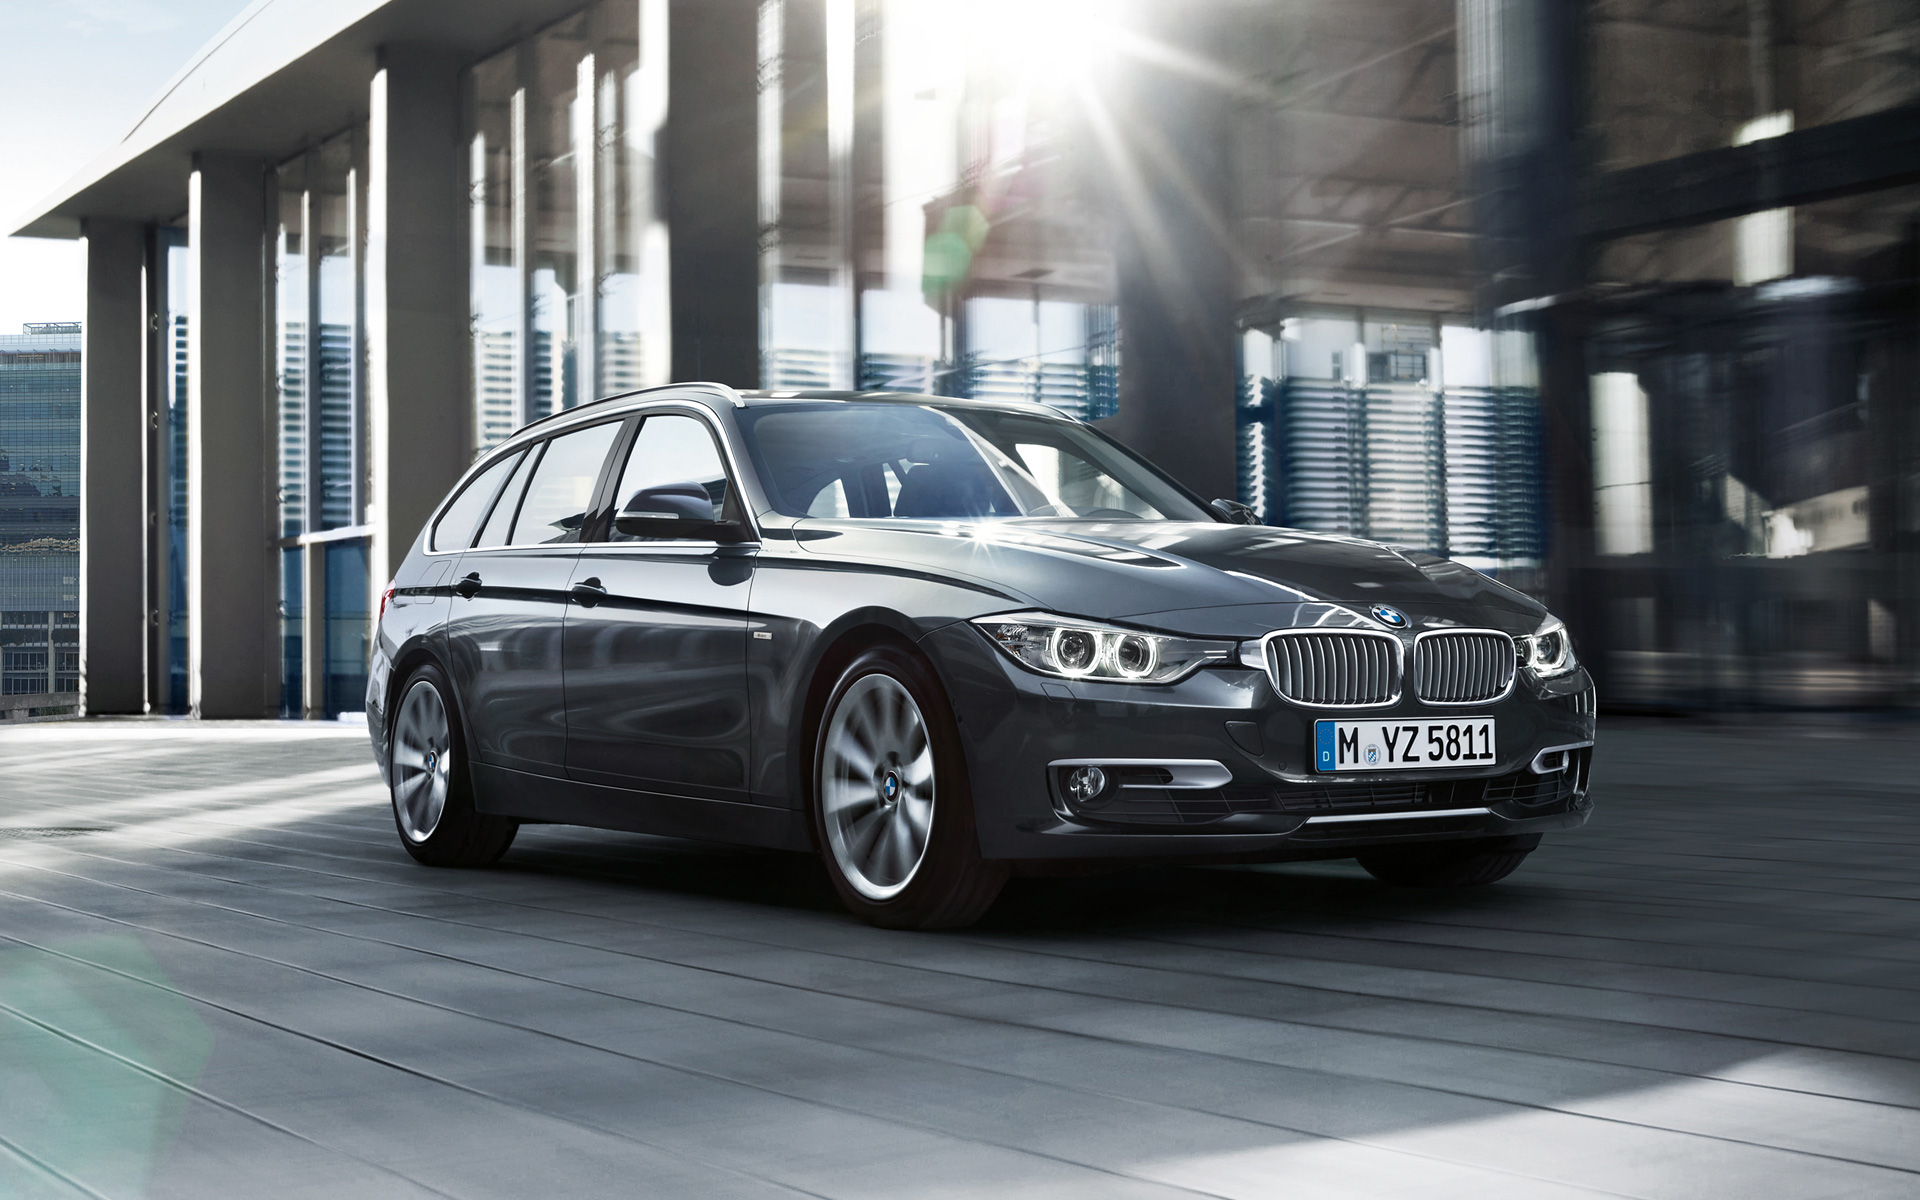 bmw 316d 2015 review amazing pictures and images look at the car. Black Bedroom Furniture Sets. Home Design Ideas